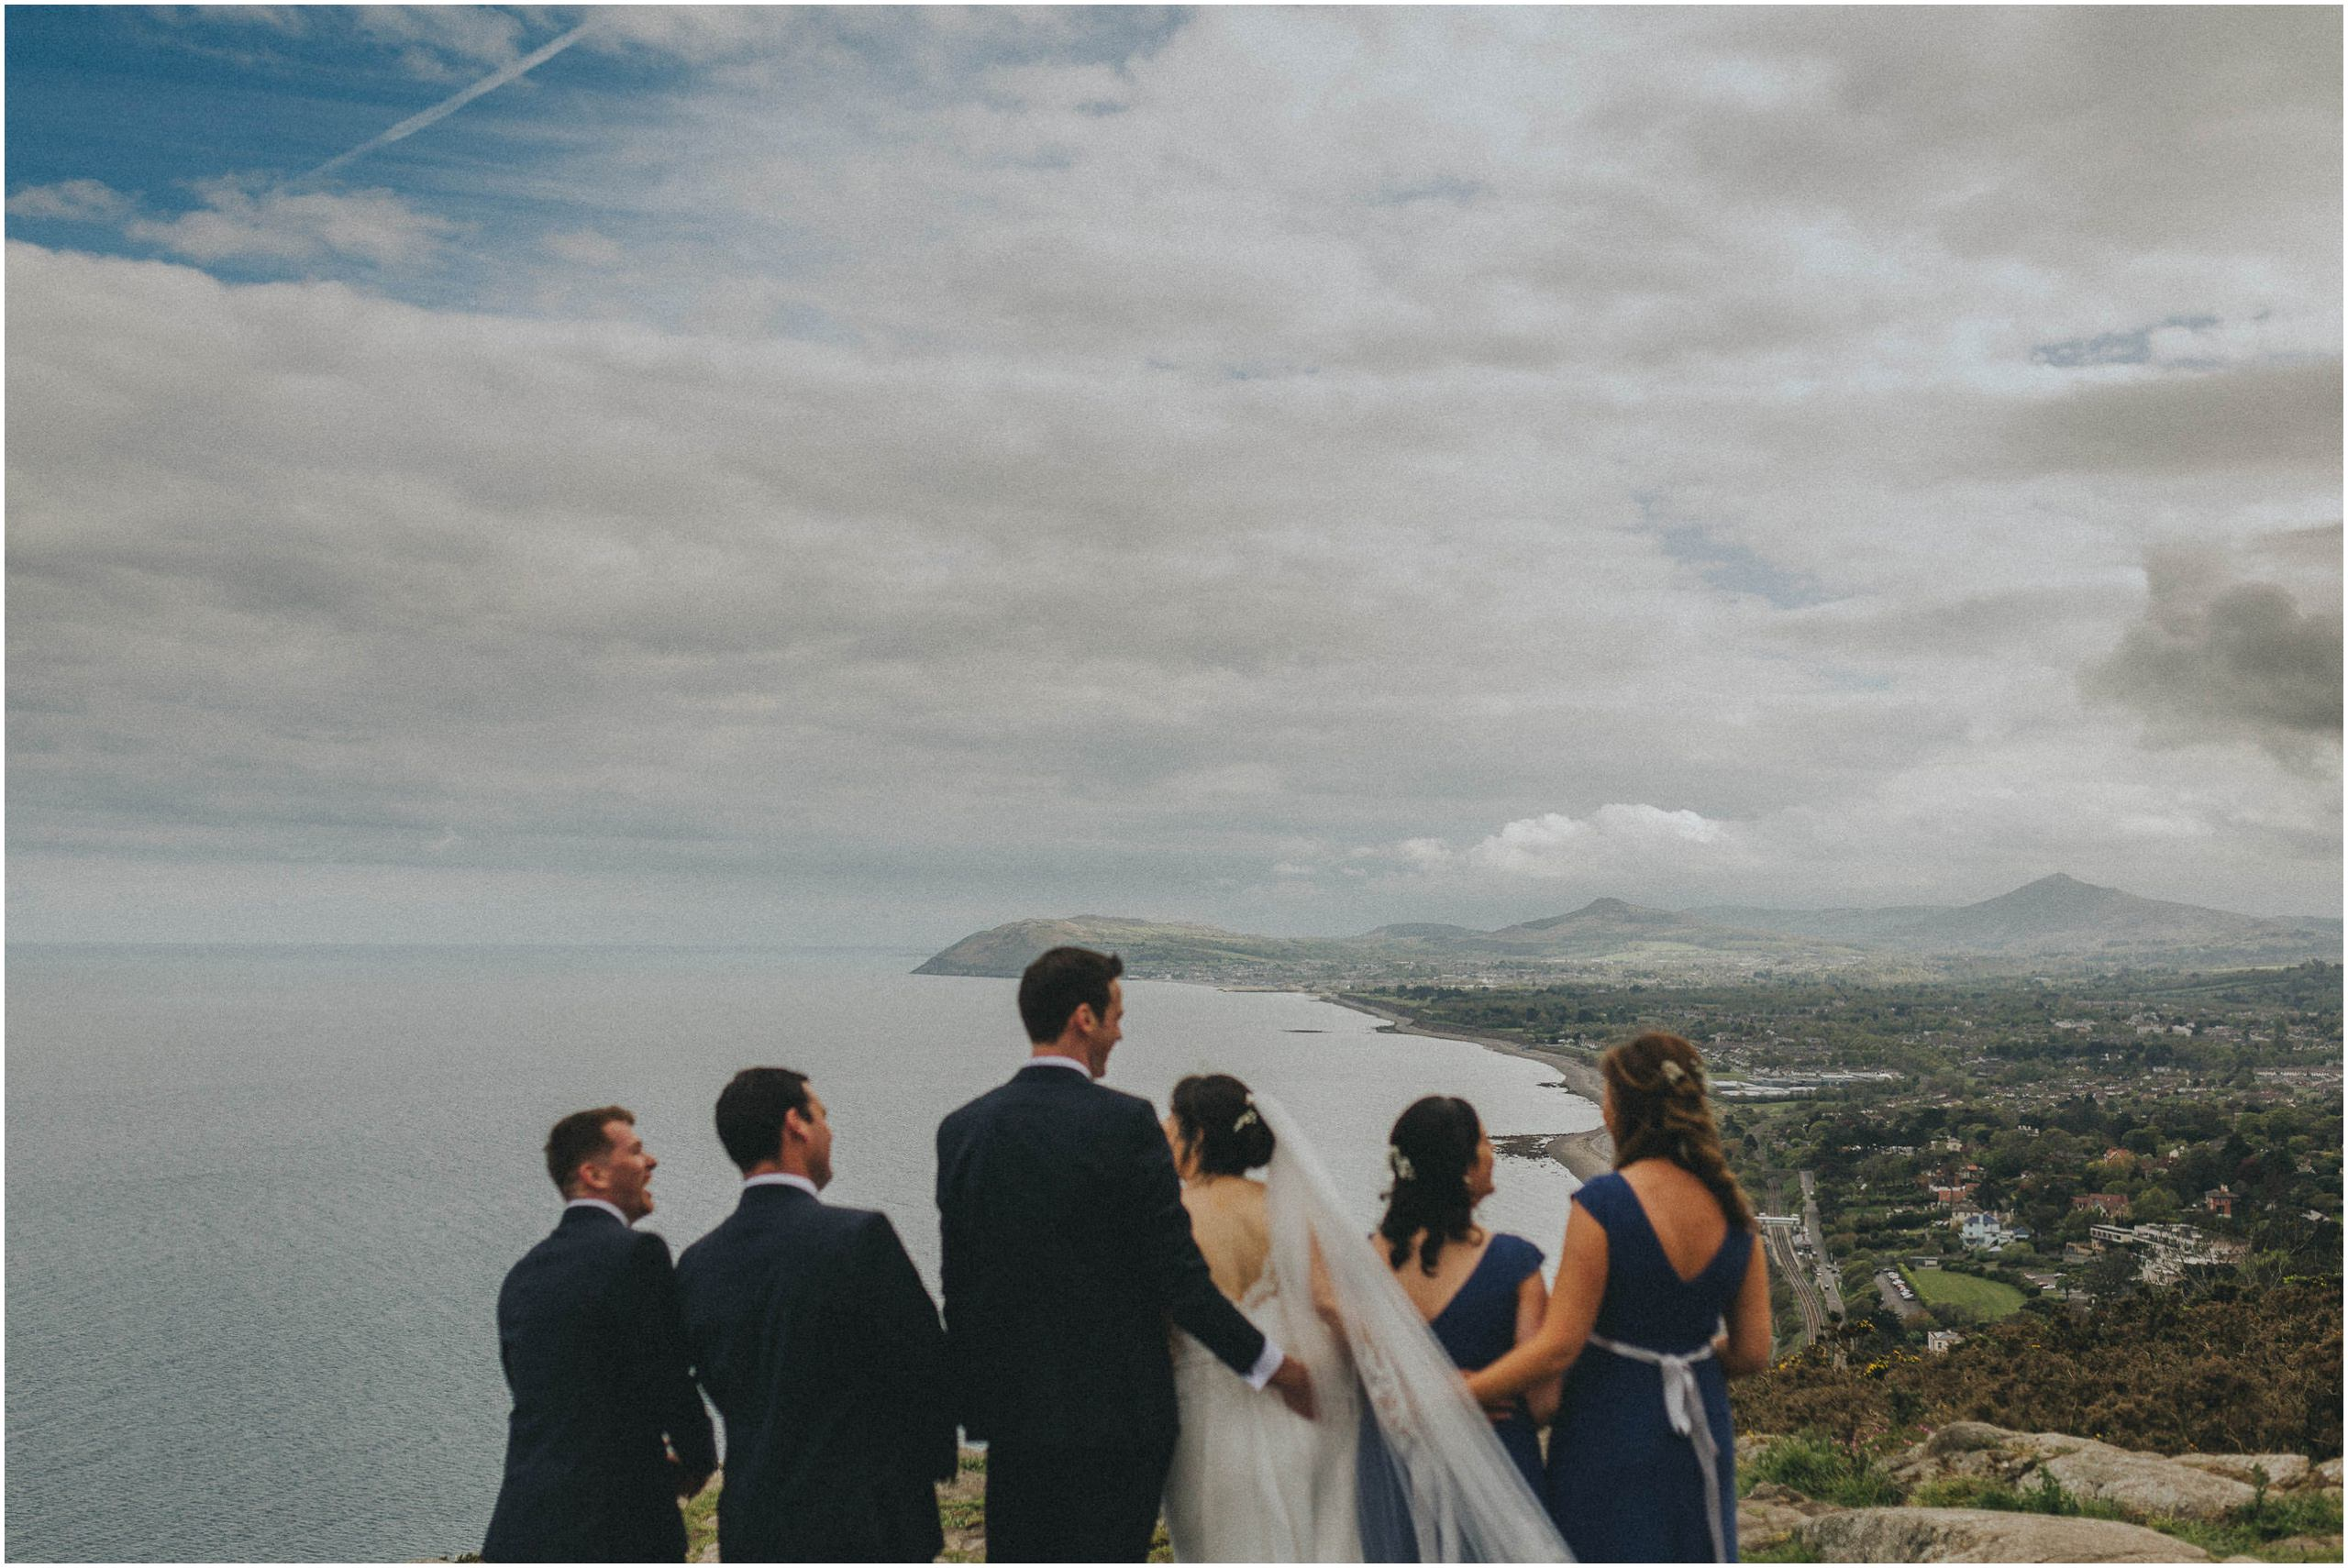 Johnny Corcoran Photography Killiney hill Royal Marine 00104 - Fun and Relaxed wedding and elopement photography in Ireland, perfect for adventurous and outdoorsy couples